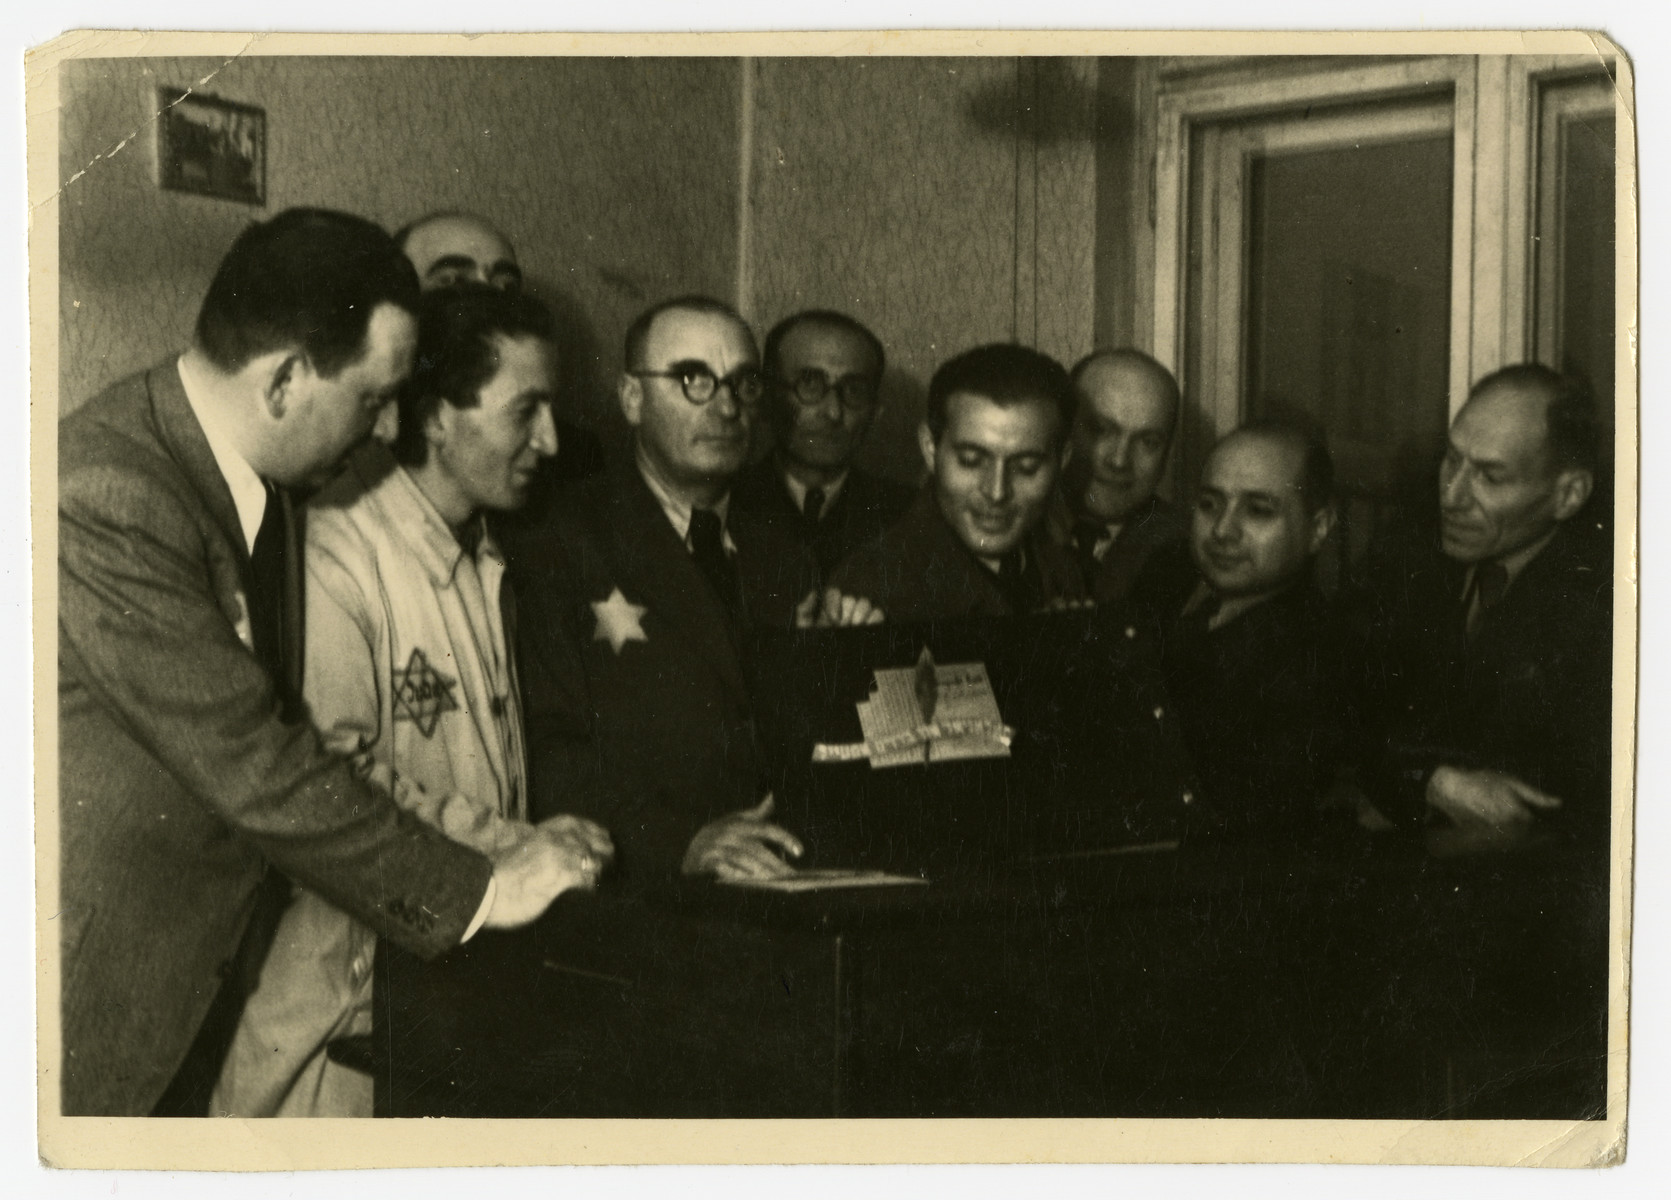 Group portrait of the managers of various workshops in the Lodz ghetto.  Among those pictured are Aaron Jakubowicz (far left), Mendel Grosman (second from the left), Max Szczesliwy (head of the food supply, third from left) and possible David Warszawski (far right).